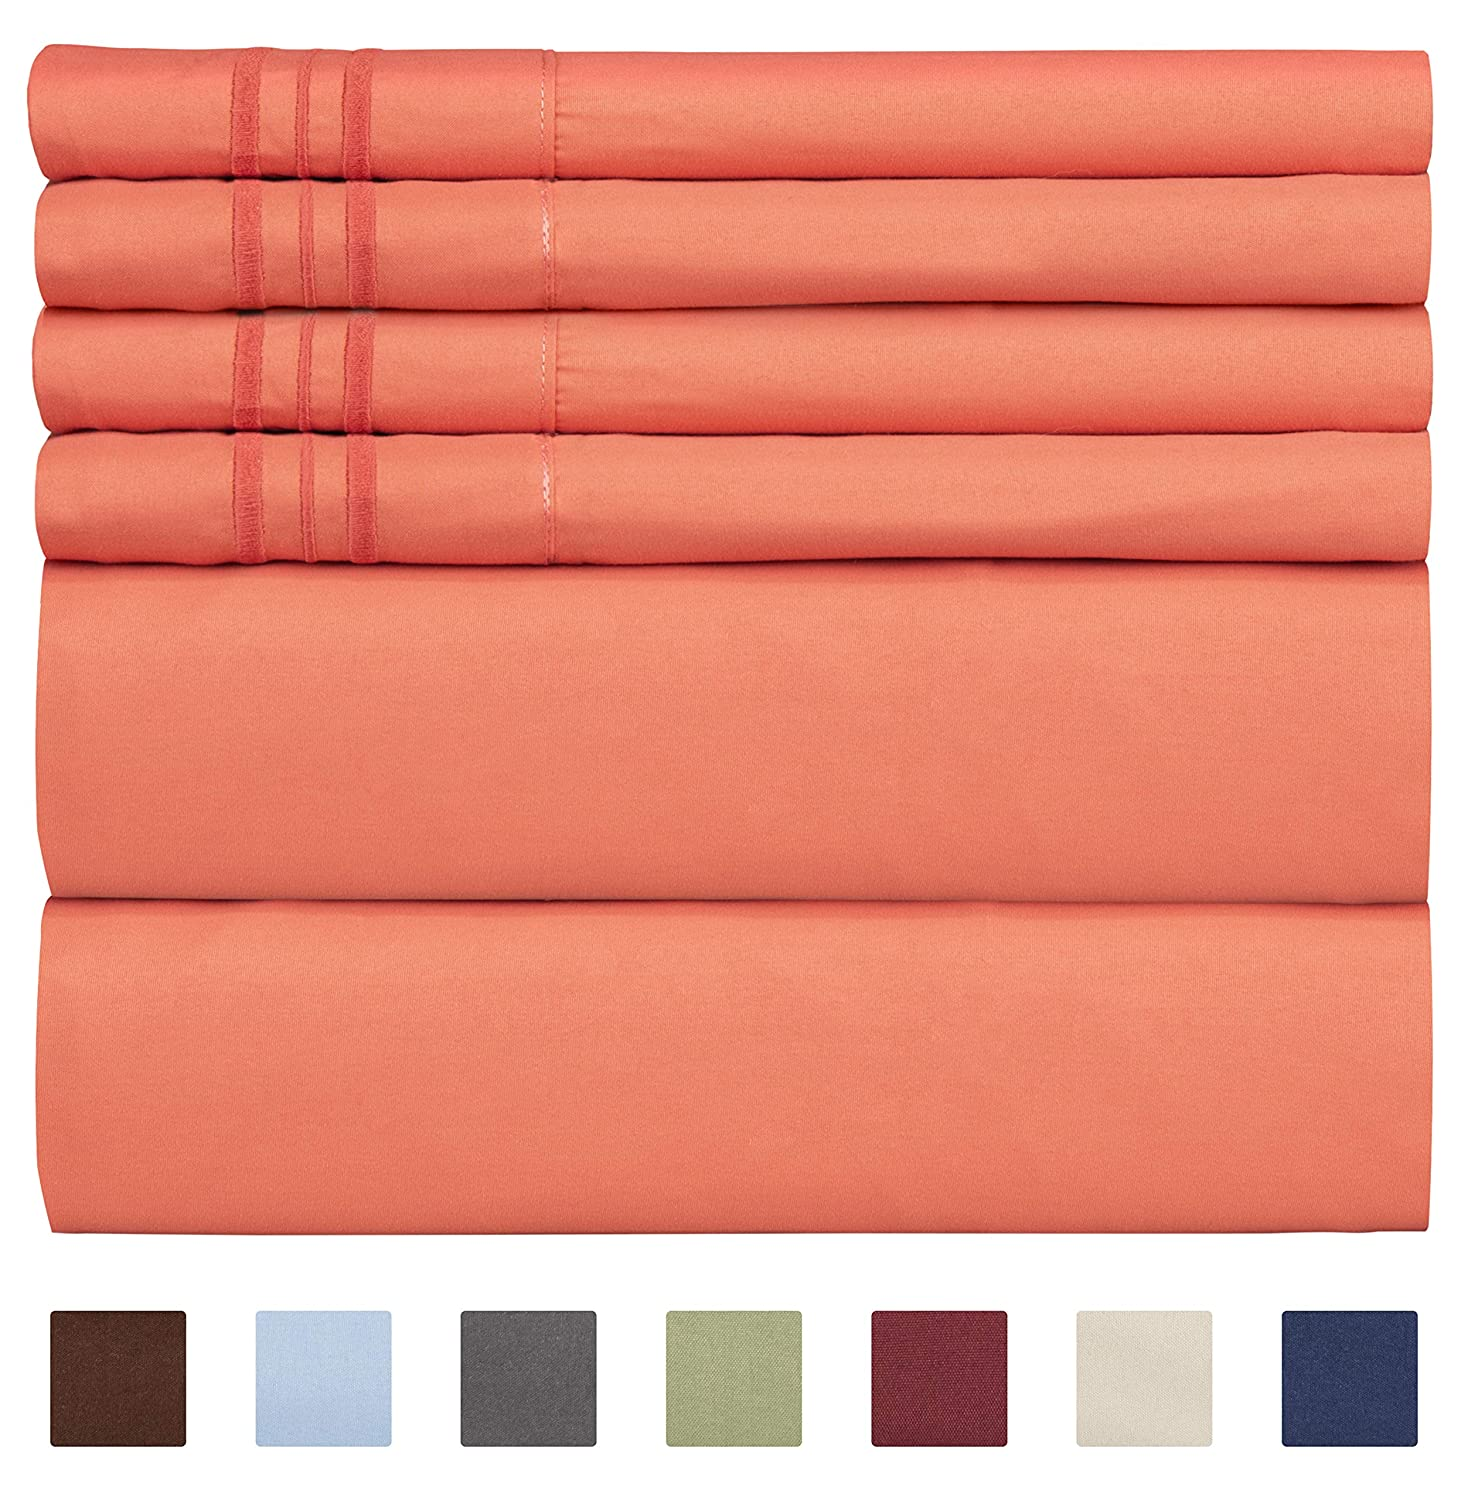 Queen Size Sheet Set - 6 Piece Set - Hotel Luxury Bed Sheets - Extra Soft - Deep Pockets - Easy Fit - Breathable & Cooling Sheets - Wrinkle Free - Comfy - Coral Sheets - Queens Sheets - 6 PC